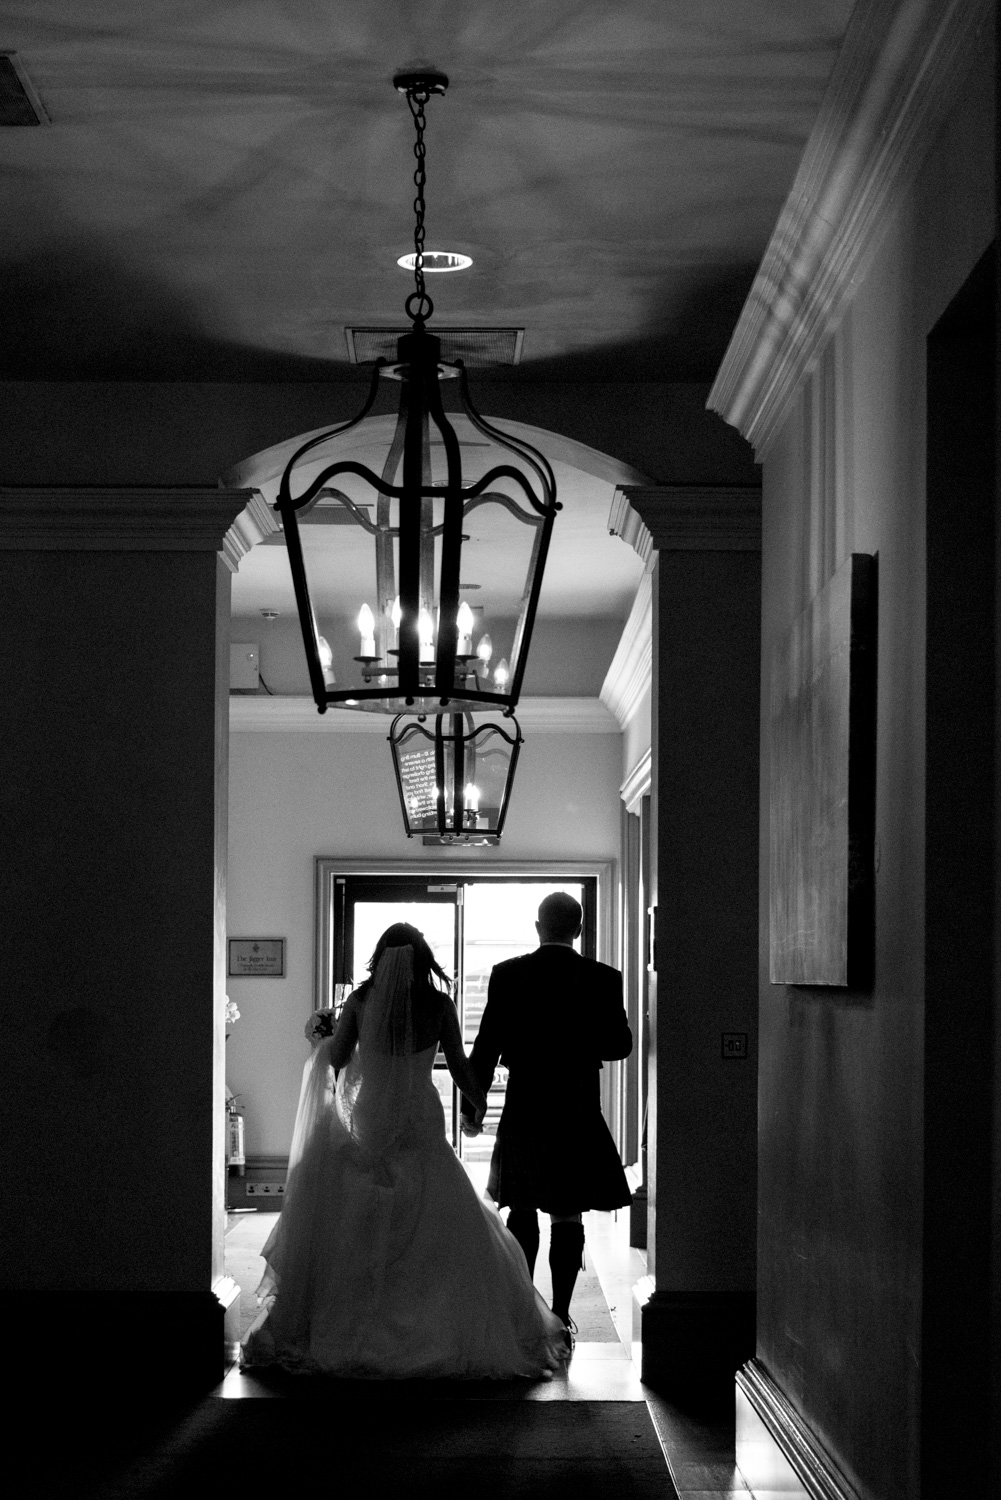 "- ""We booked Ali to capture our wedding day and we truly couldn't have asked for a better service. From the first contact we made, Ali was friendly, approachable, helpful and professional. We met before our wedding to discuss what we were after and had a mini photoshoot which was great to experience what it would be like on the day. In the run up to the wedding, Ali kept in touch with us making sure she had all the details correct. On the day itself, Ali was great. She was very much in the background, capturing all of the special moments without being intrusive and kept everyone relaxed. After the wedding, Ali kept in touch and even sent us through some previews as she knew we were excited to see. Ali created a slideshow for us using a selection of our photos and background music. I loved it so much I watched it 3 times in a row and sobbed my heart out!!We were absolutely delighted with the end result. Ali captured the day perfectly and we have such special photos which we will treasure forever. Thank you so much Ali, you truly are an artist!"""